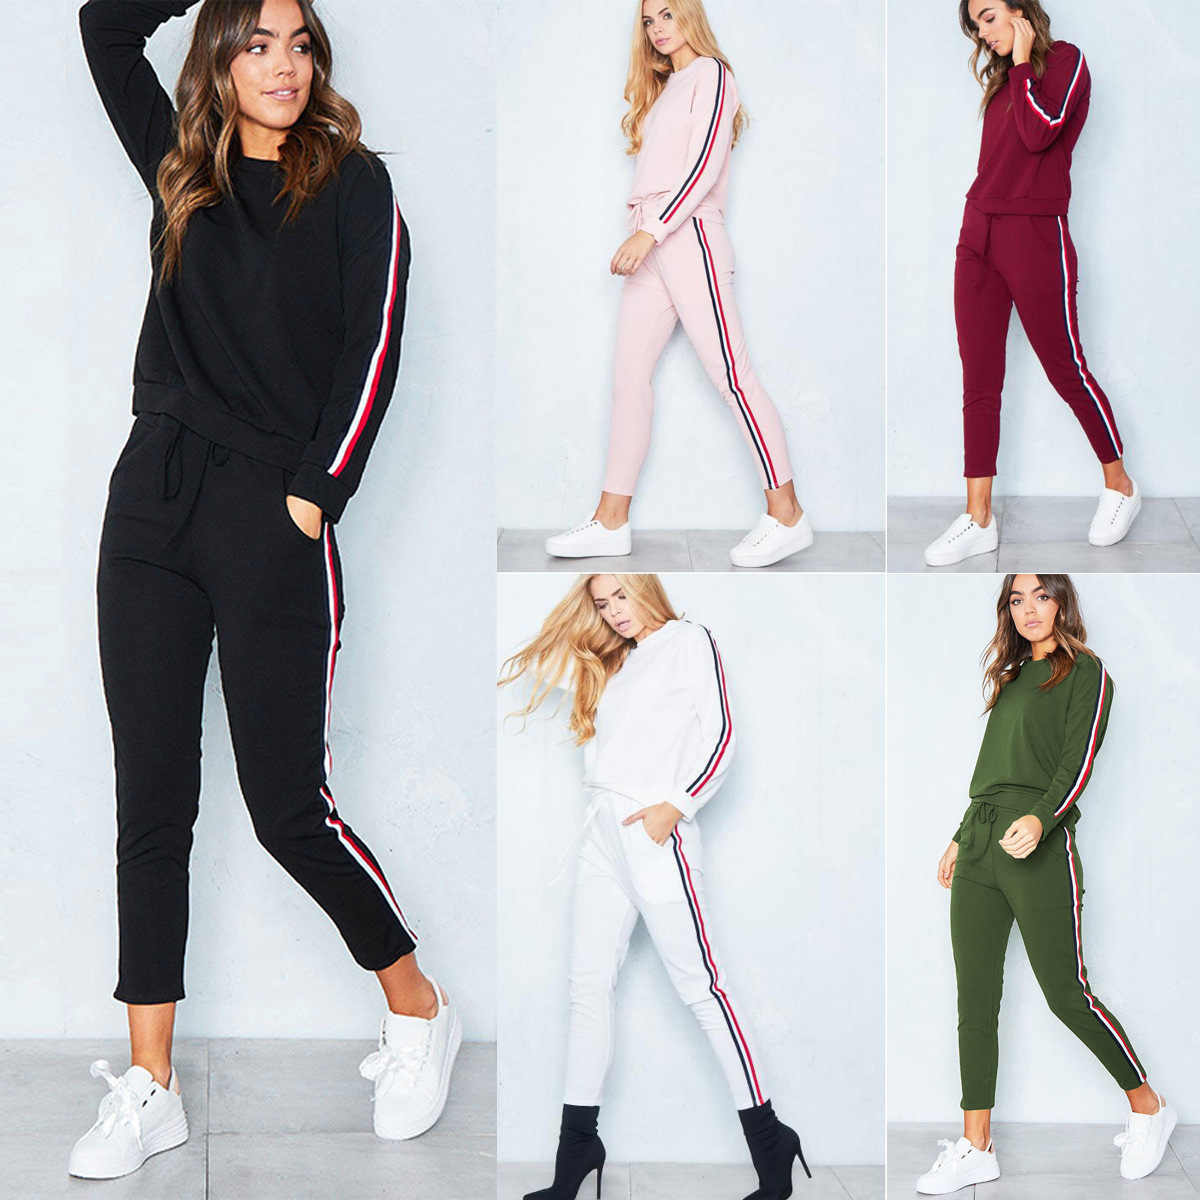 Europe Hot Selling Hot Sales Sexy Women's Leisure Sports Suit